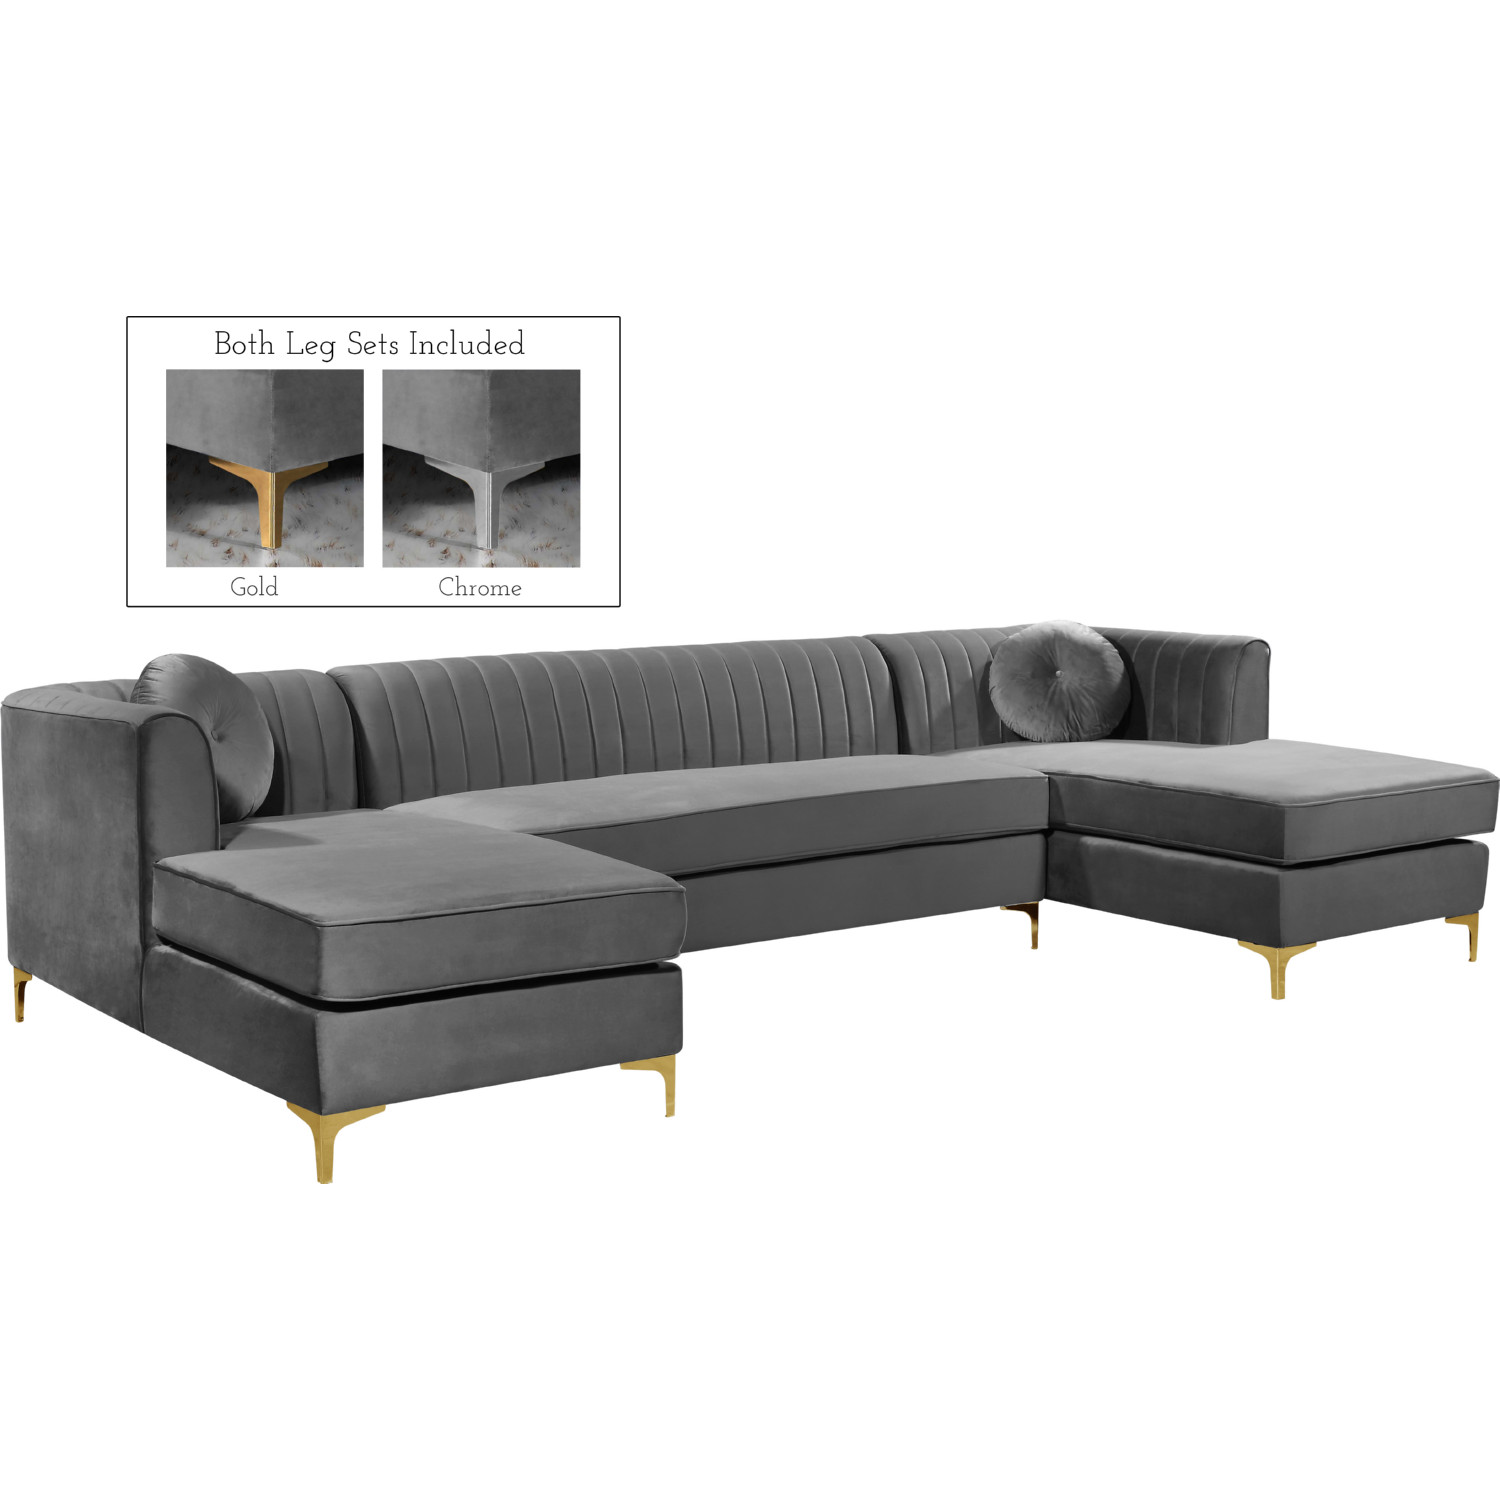 Incredible Graham Sectional Sofa W Double Chaise In Grey Velvet By Meridian Furniture Gmtry Best Dining Table And Chair Ideas Images Gmtryco